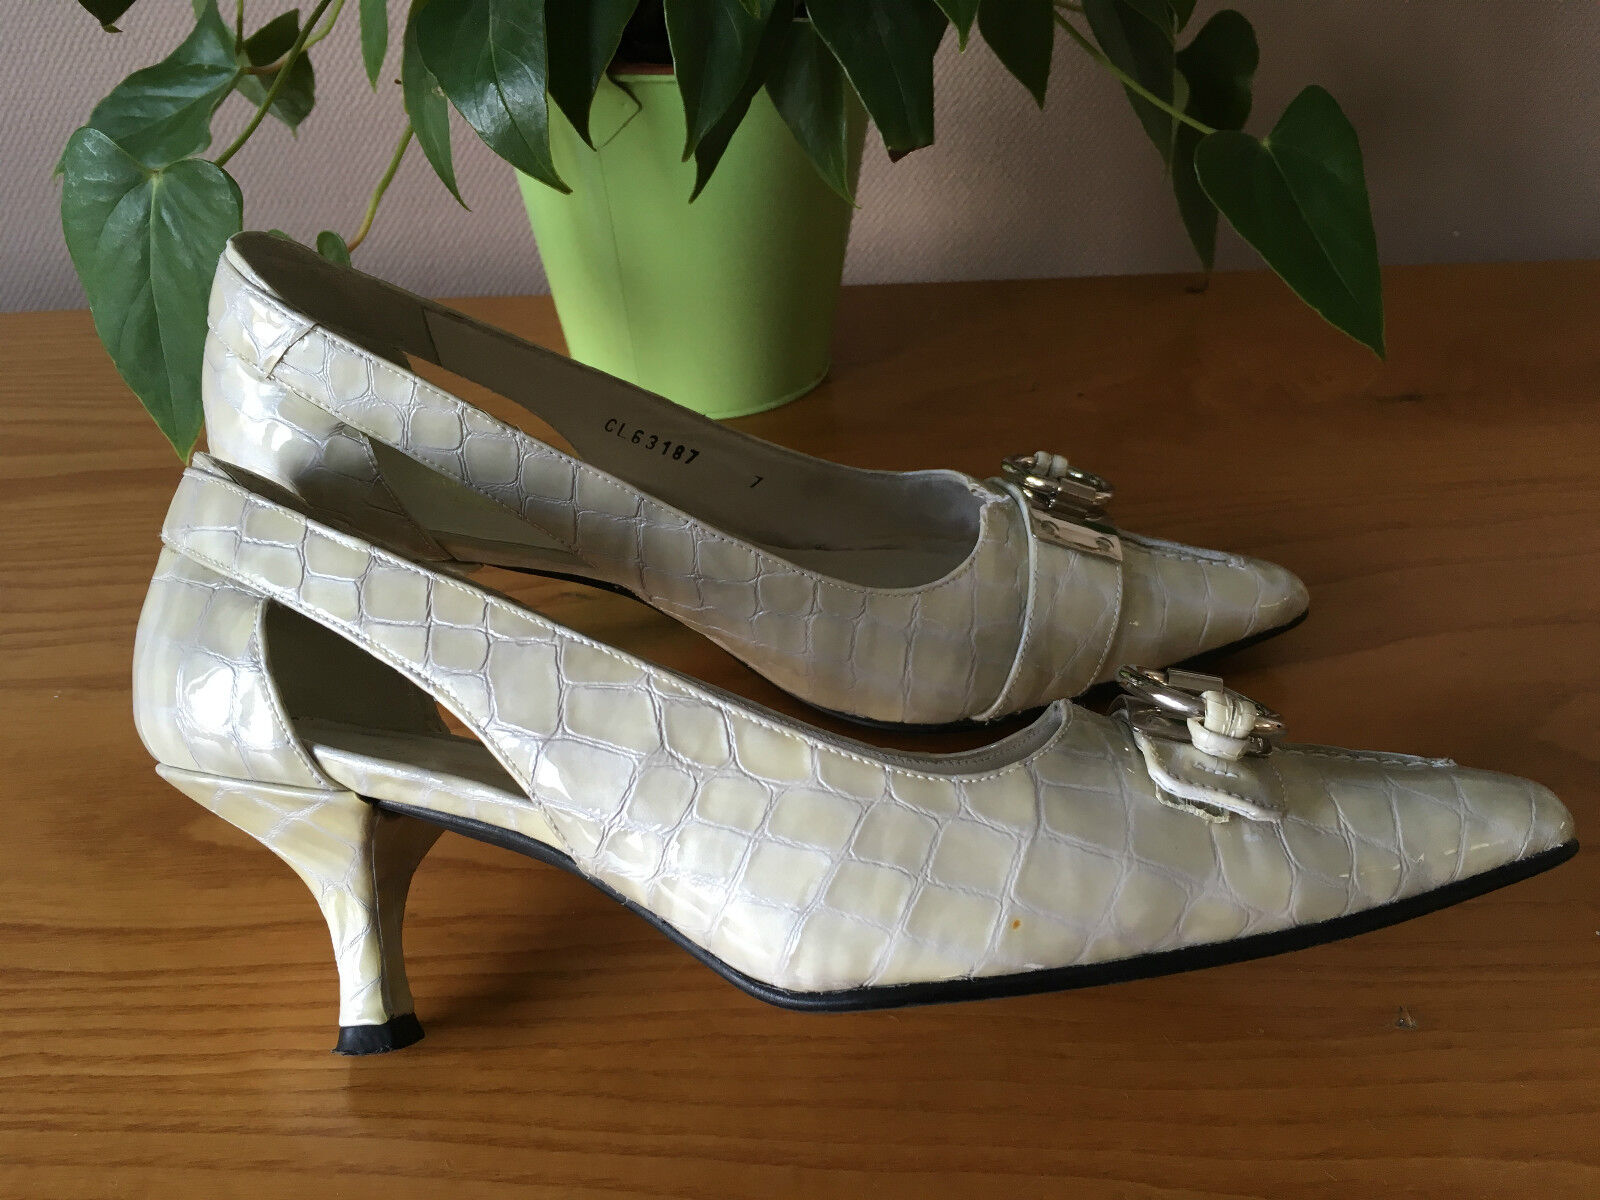 Stuart Weitzman Russell & Bromley pearl leather EU court shoes UK 5.5 EU leather 38 Bridal 3ef08f